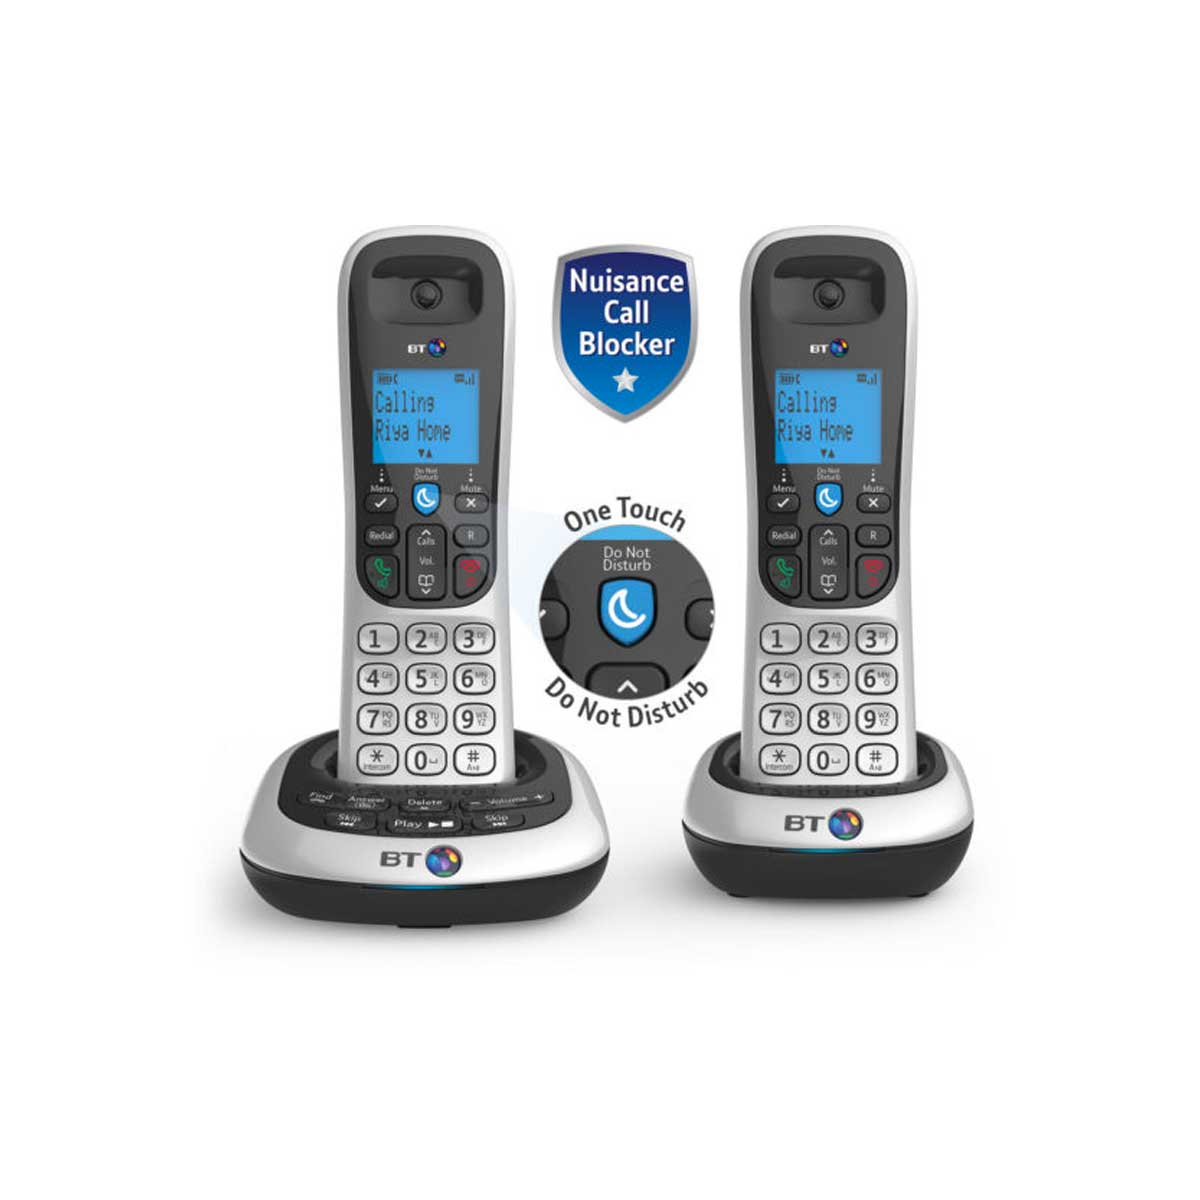 BT BT2700 Twin Dect Telephone with Nuisance Call Blocker and Answer Machine